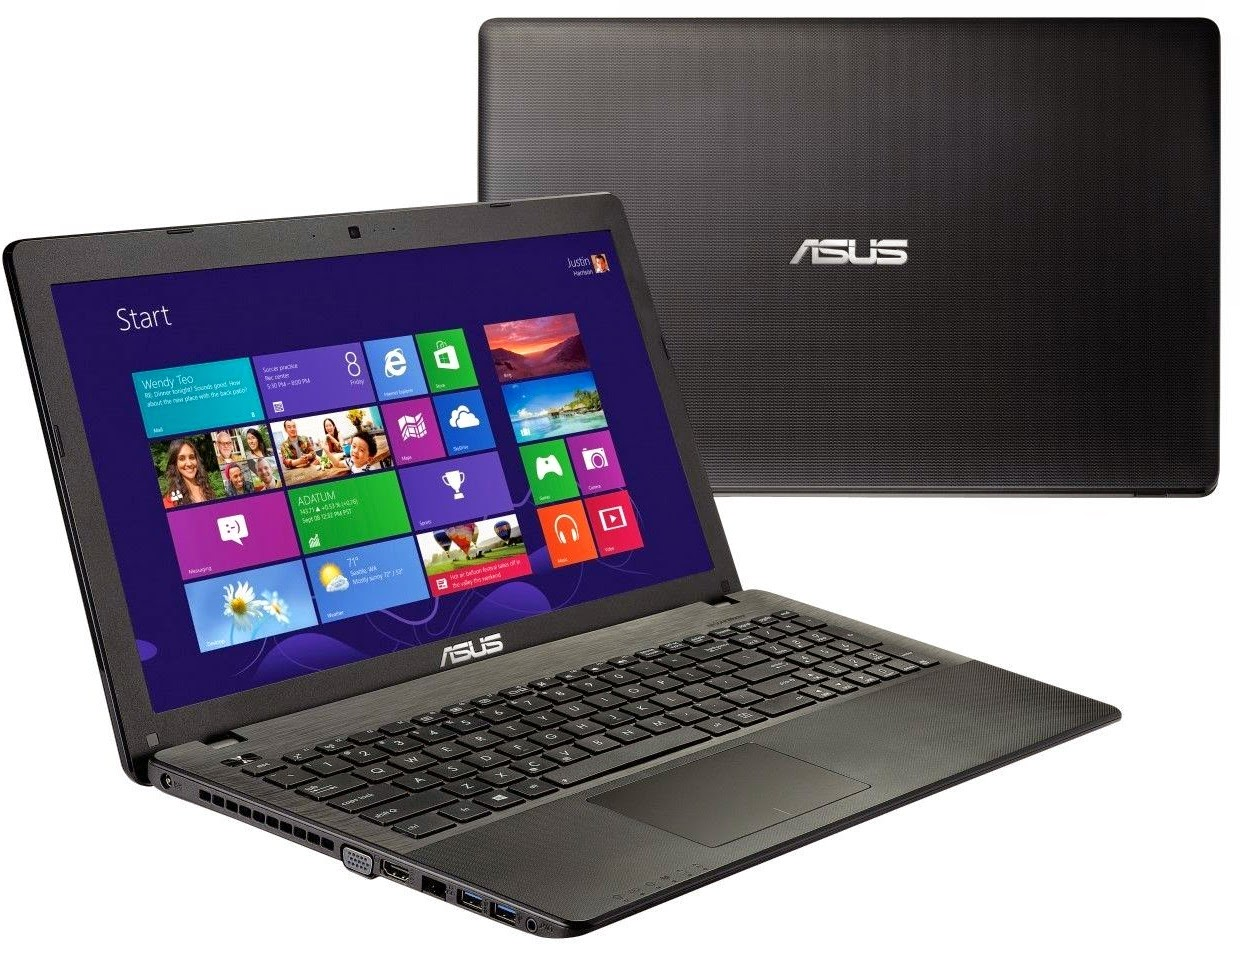 Asus X552VL Drivers For Windows 8/8.1 (64bit)